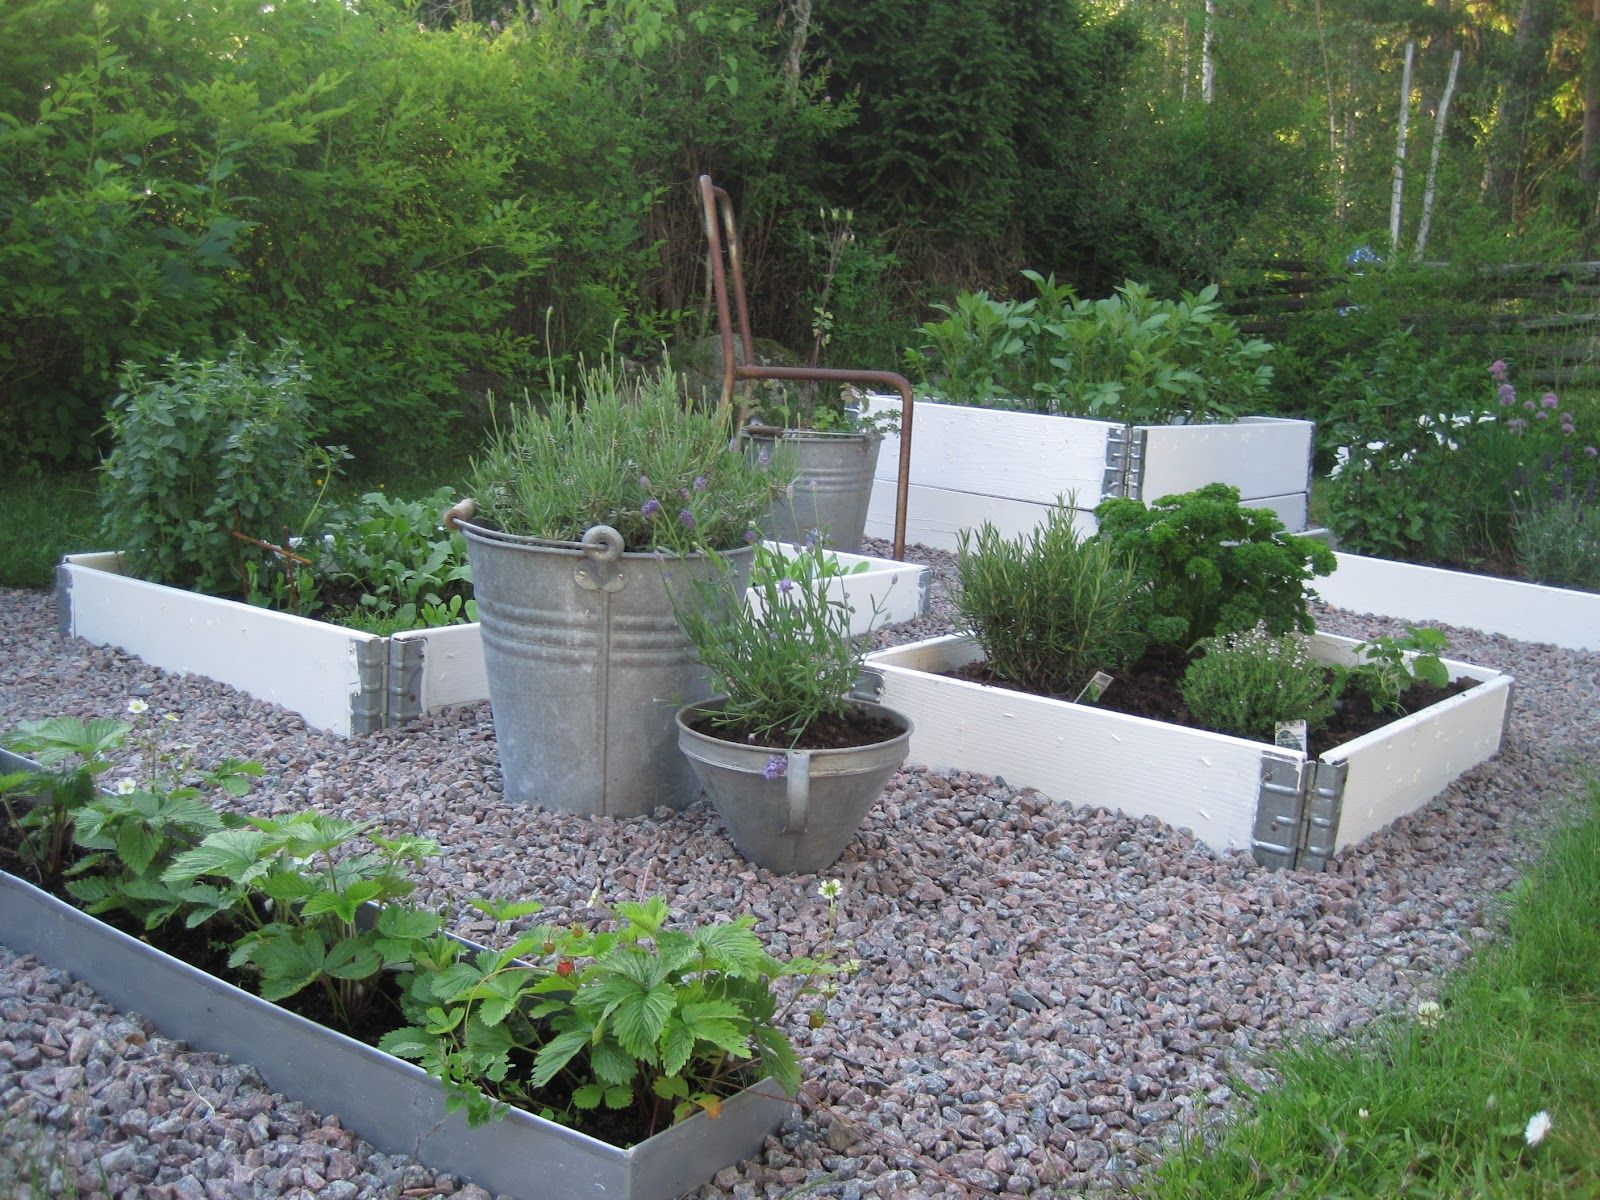 Using a mix of containers and raised beds to make vegetable garden more attractive.